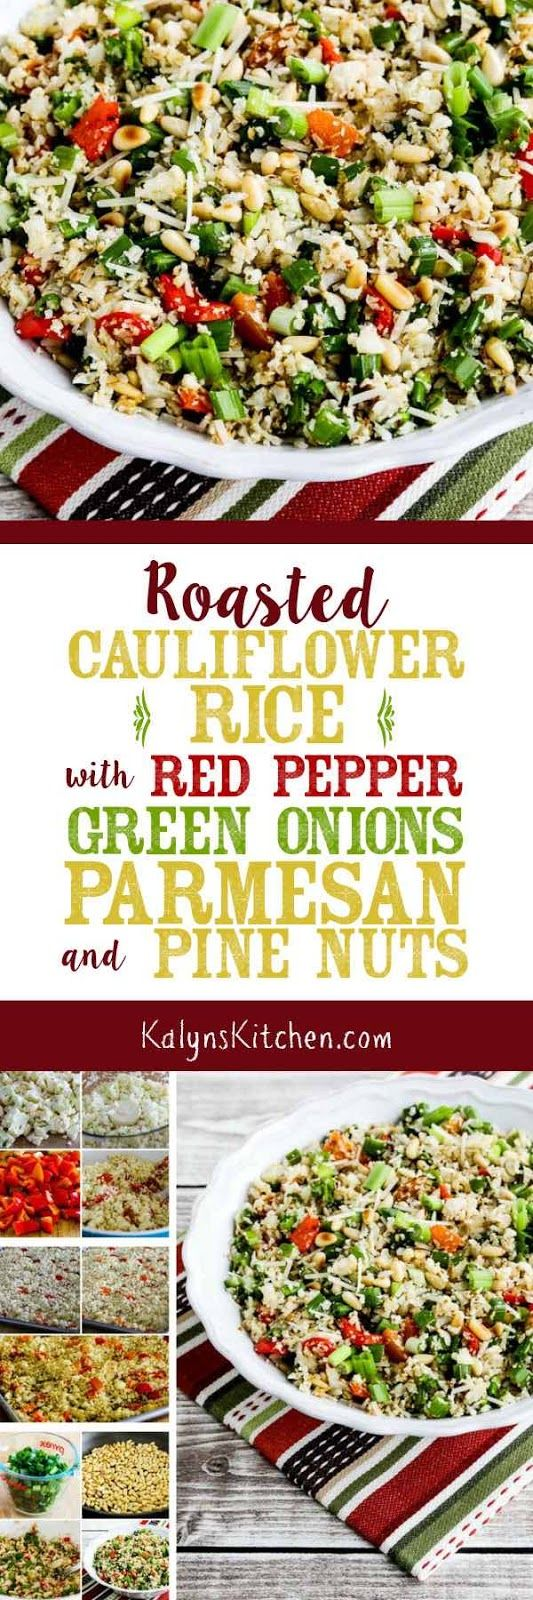 Roasted Cauliflower Rice with Red Pepper, Green Onion, Parmesan, and Pine Nuts is colorful and festive enough for a special meal, but this is also about as healthy as it gets for a side dish. The recipe is low-carb, Keto, gluten-free, low-glycemic, and South Beach Diet friendly. [found on KalynsKitchen.com]